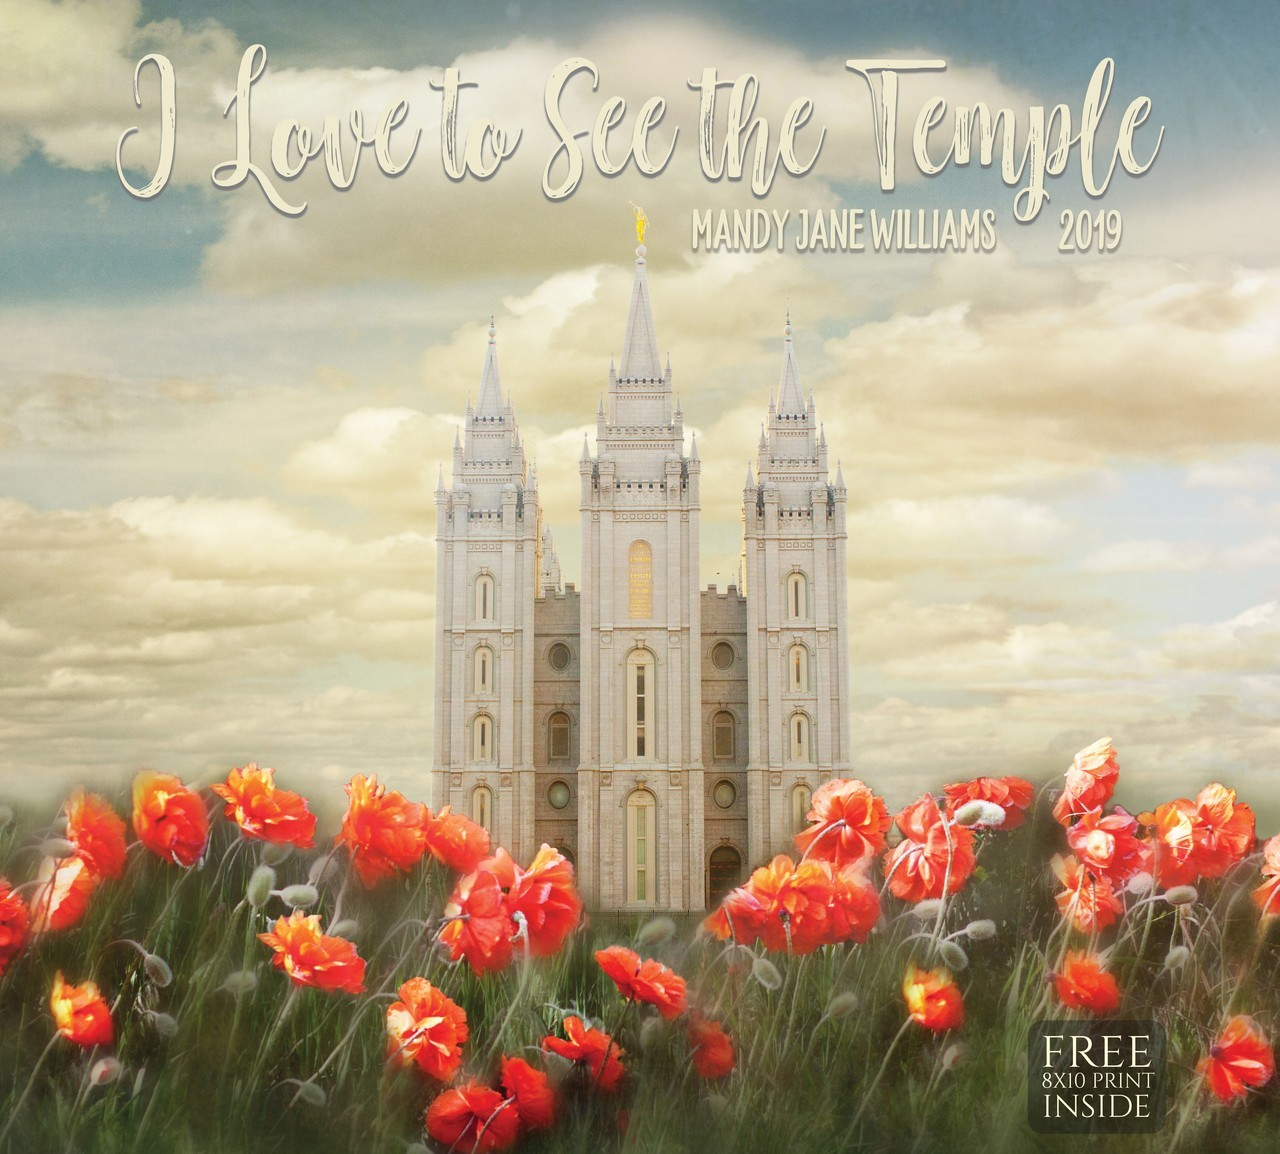 AF - 2019 Mandy Jane Williams Calendar - I Love the See the Temple (Free 8X10 Print Inside)<BR>2019年 マンデイ・ジェーン・ウィリアムズ - I Love the See the Temple (Free 8X10 Print Inside) 【壁掛け】